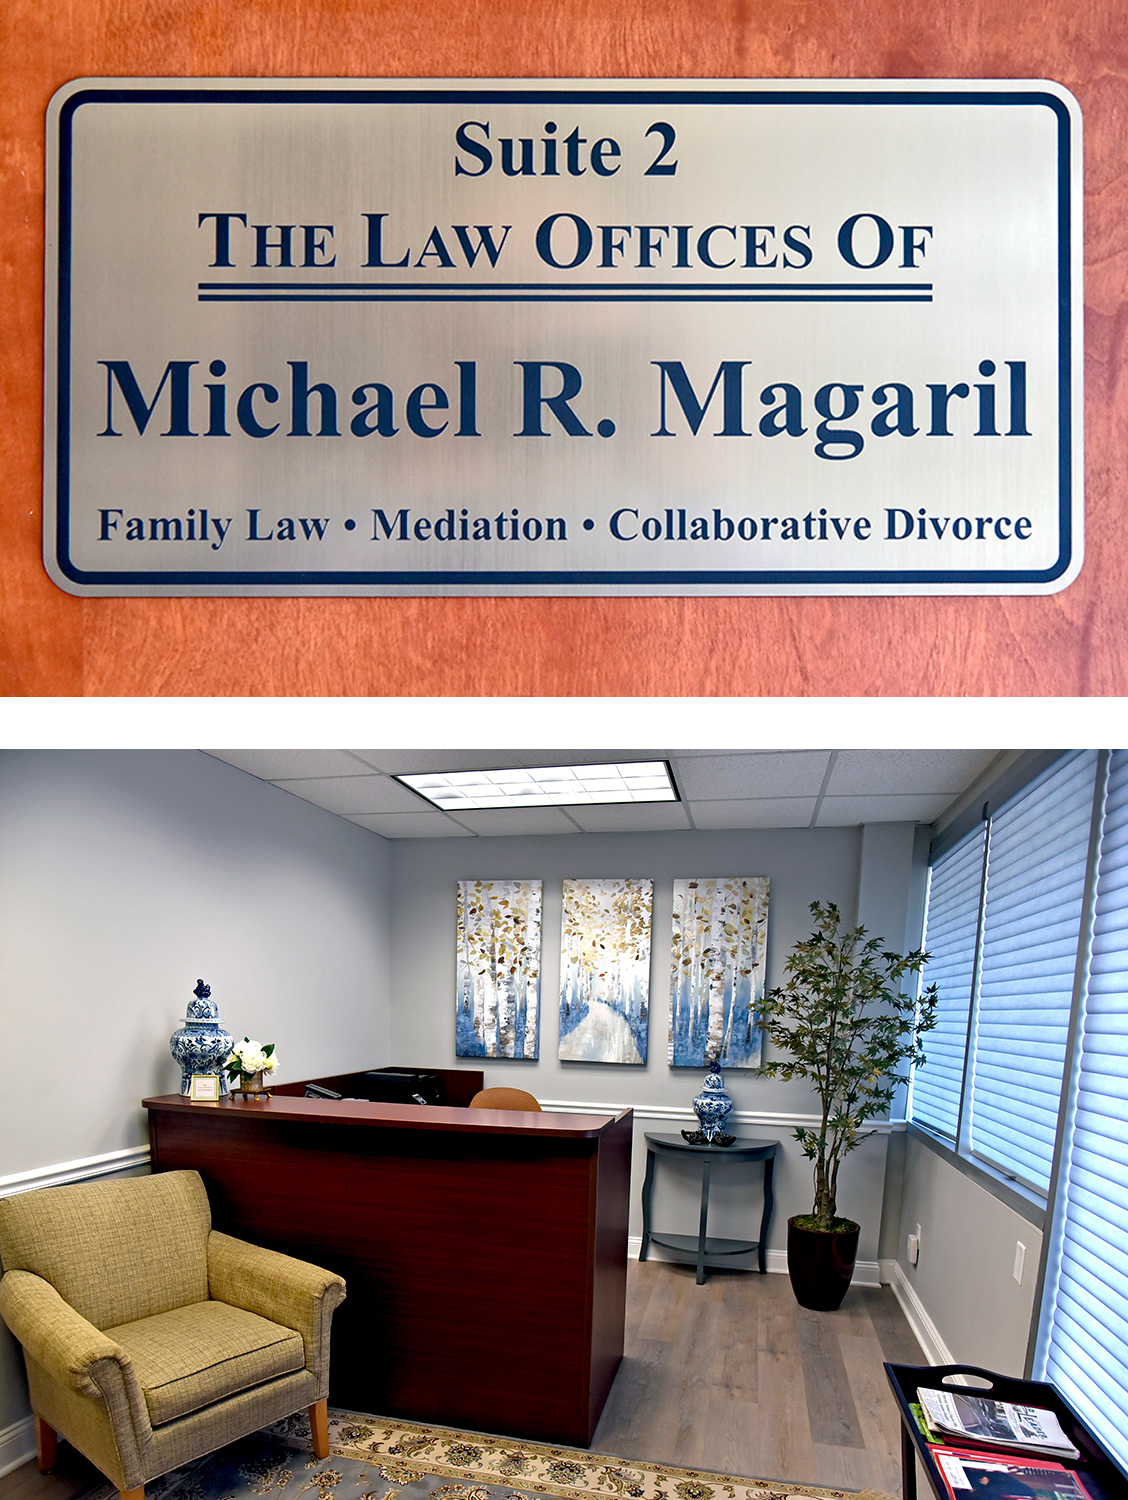 family law mountainside nj mediation mediator